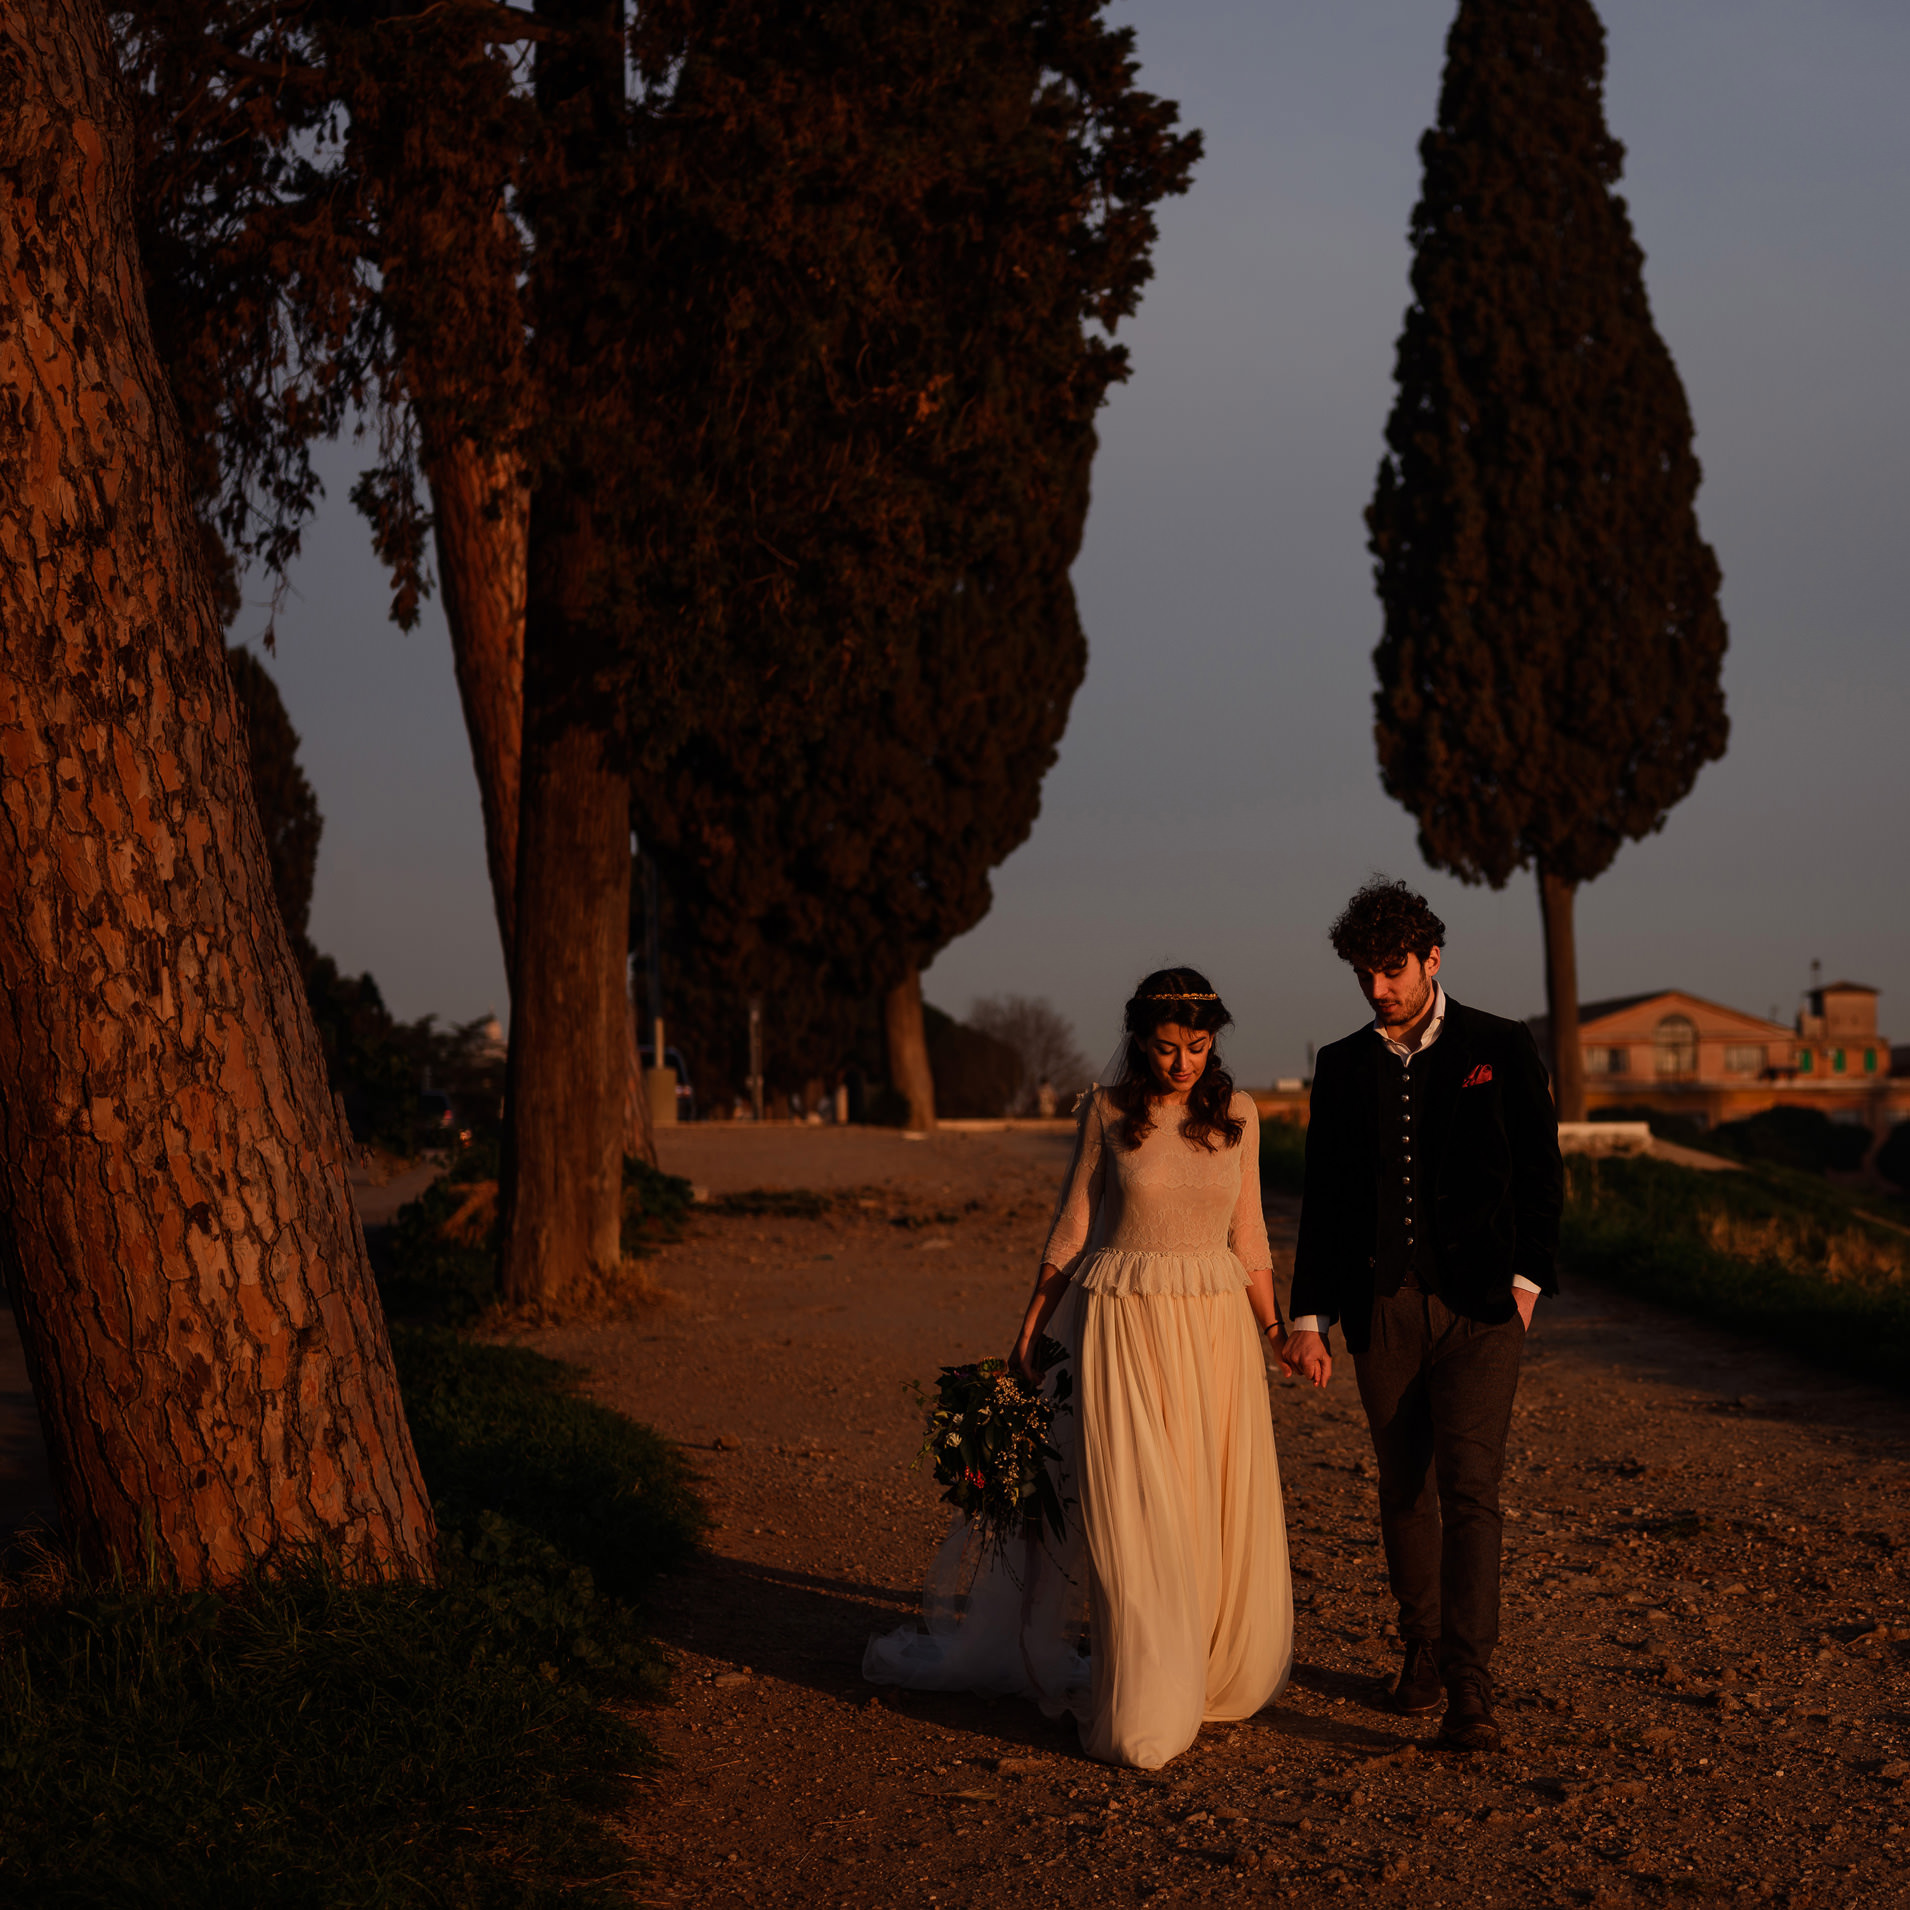 Fuji X Wedding Photography: Fujifilm GFX For Weddings